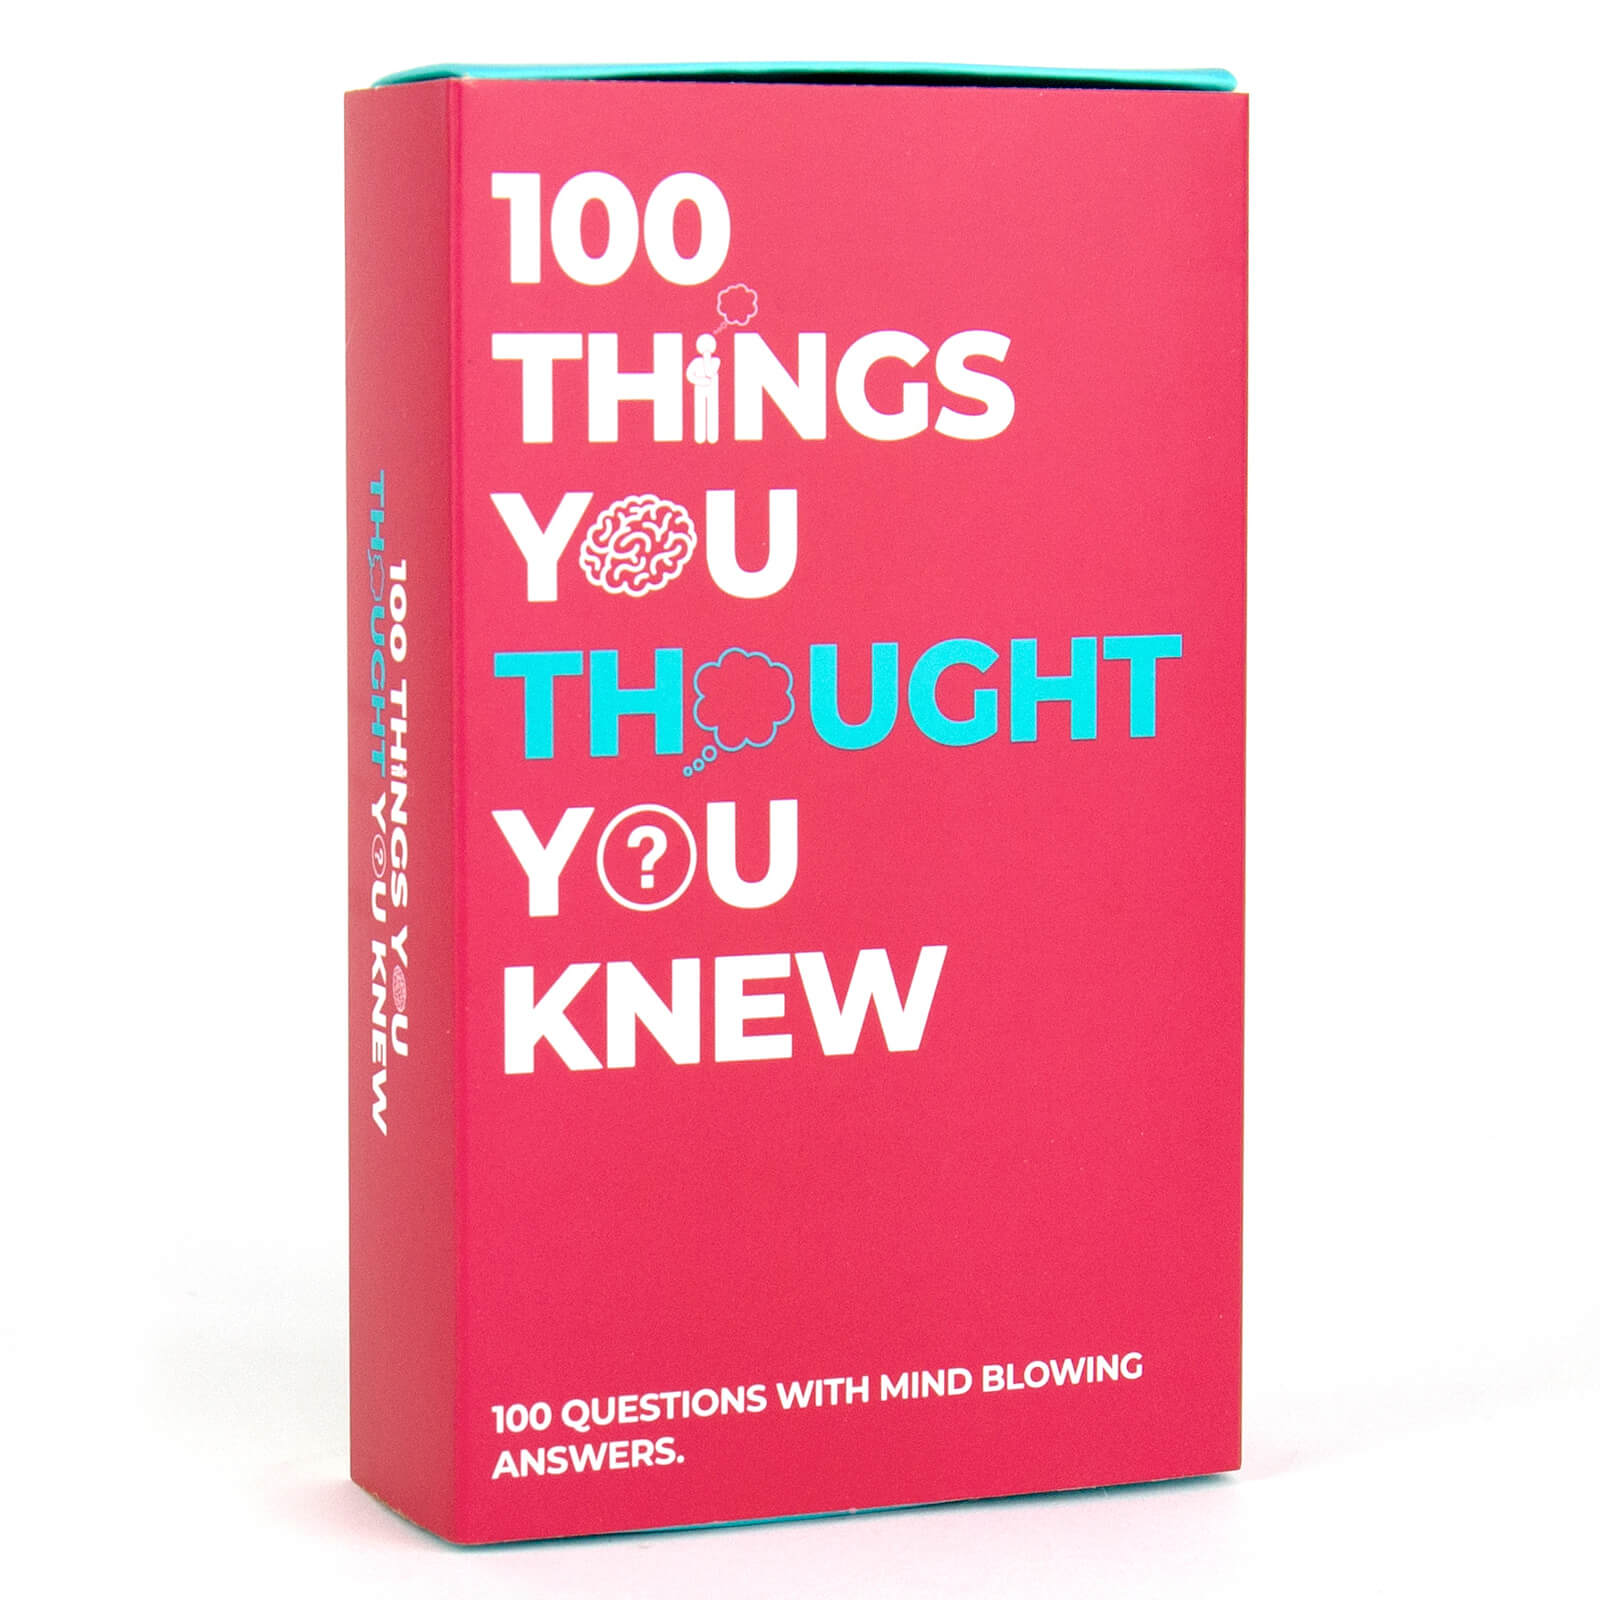 Image of 100 Things You Thought You Knew Trivia Cards